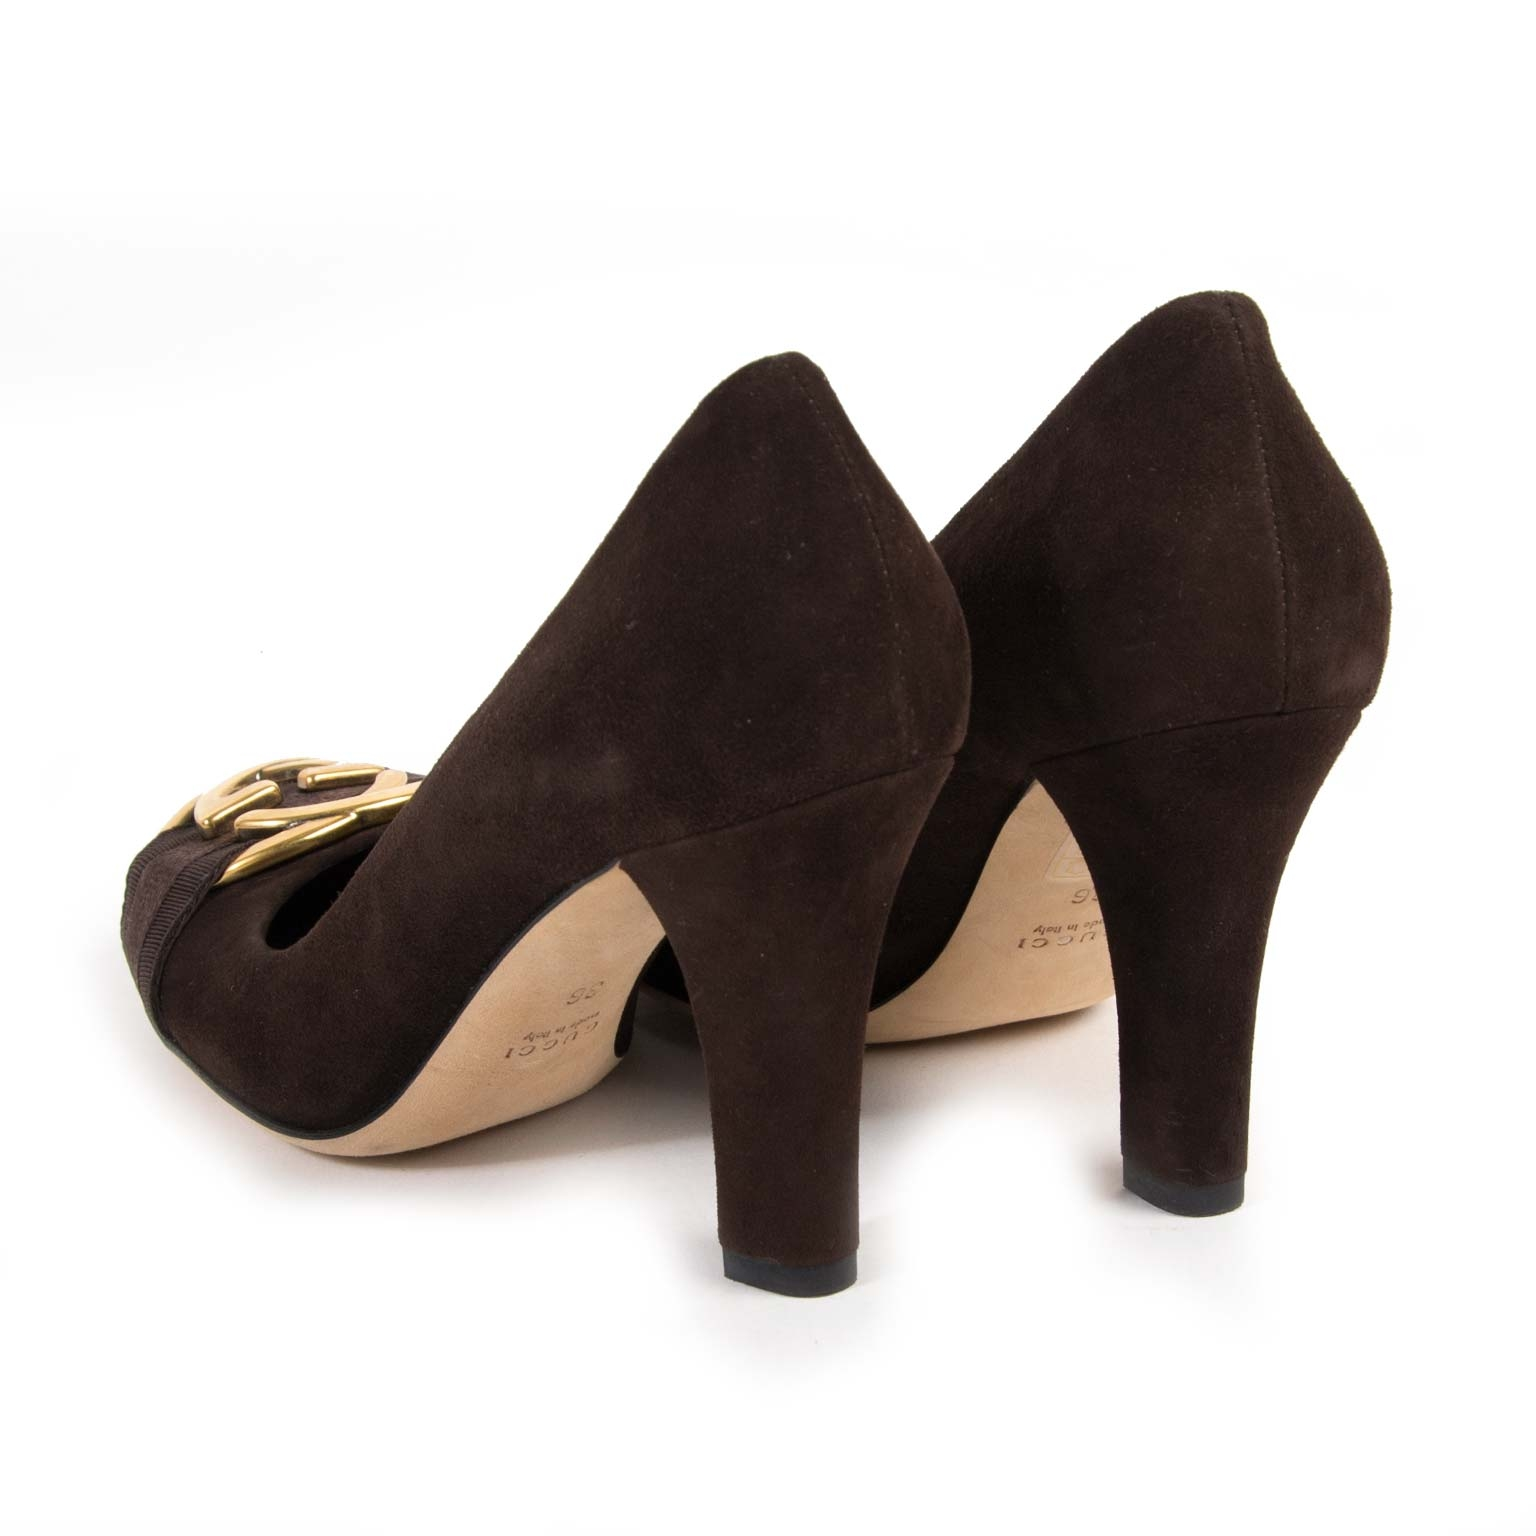 ... Gucci Brown Suede Interlocking G pumps now for sale at labellov vintage  fashion webshop Belgium f505595842c